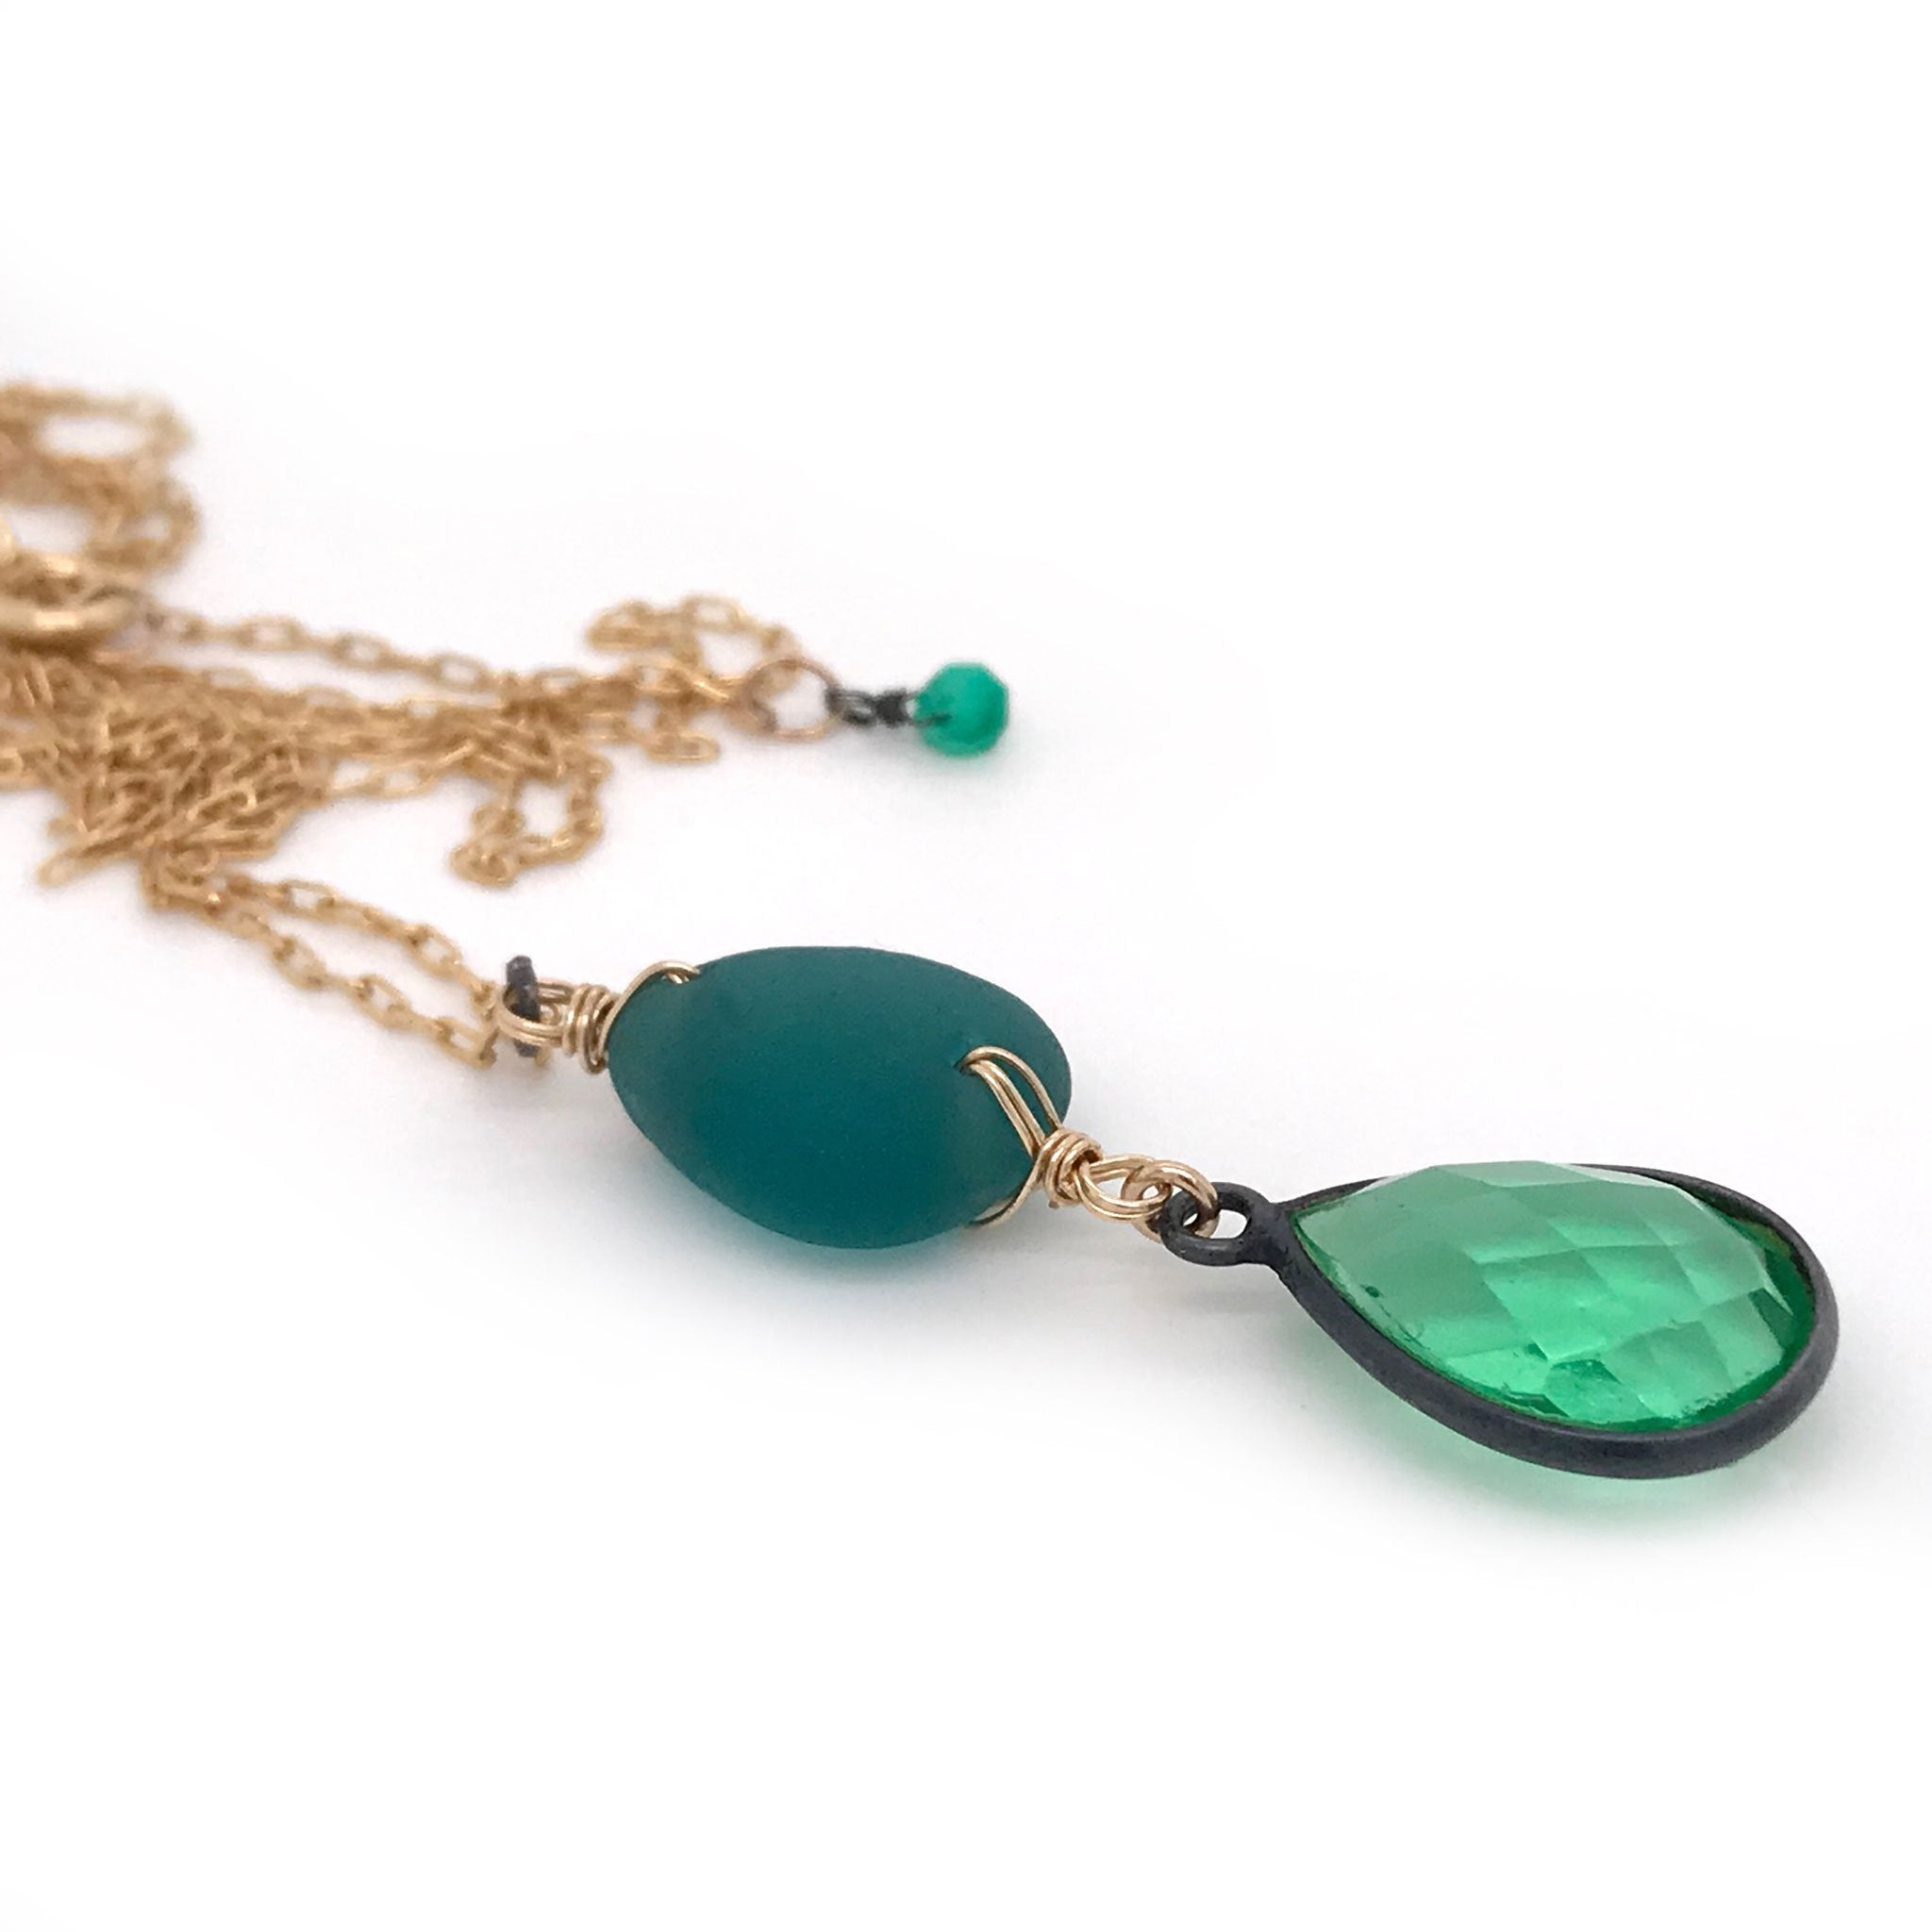 teal necklace with seaglass and green quartz kriket Broadhurst jewellery Christmas gift